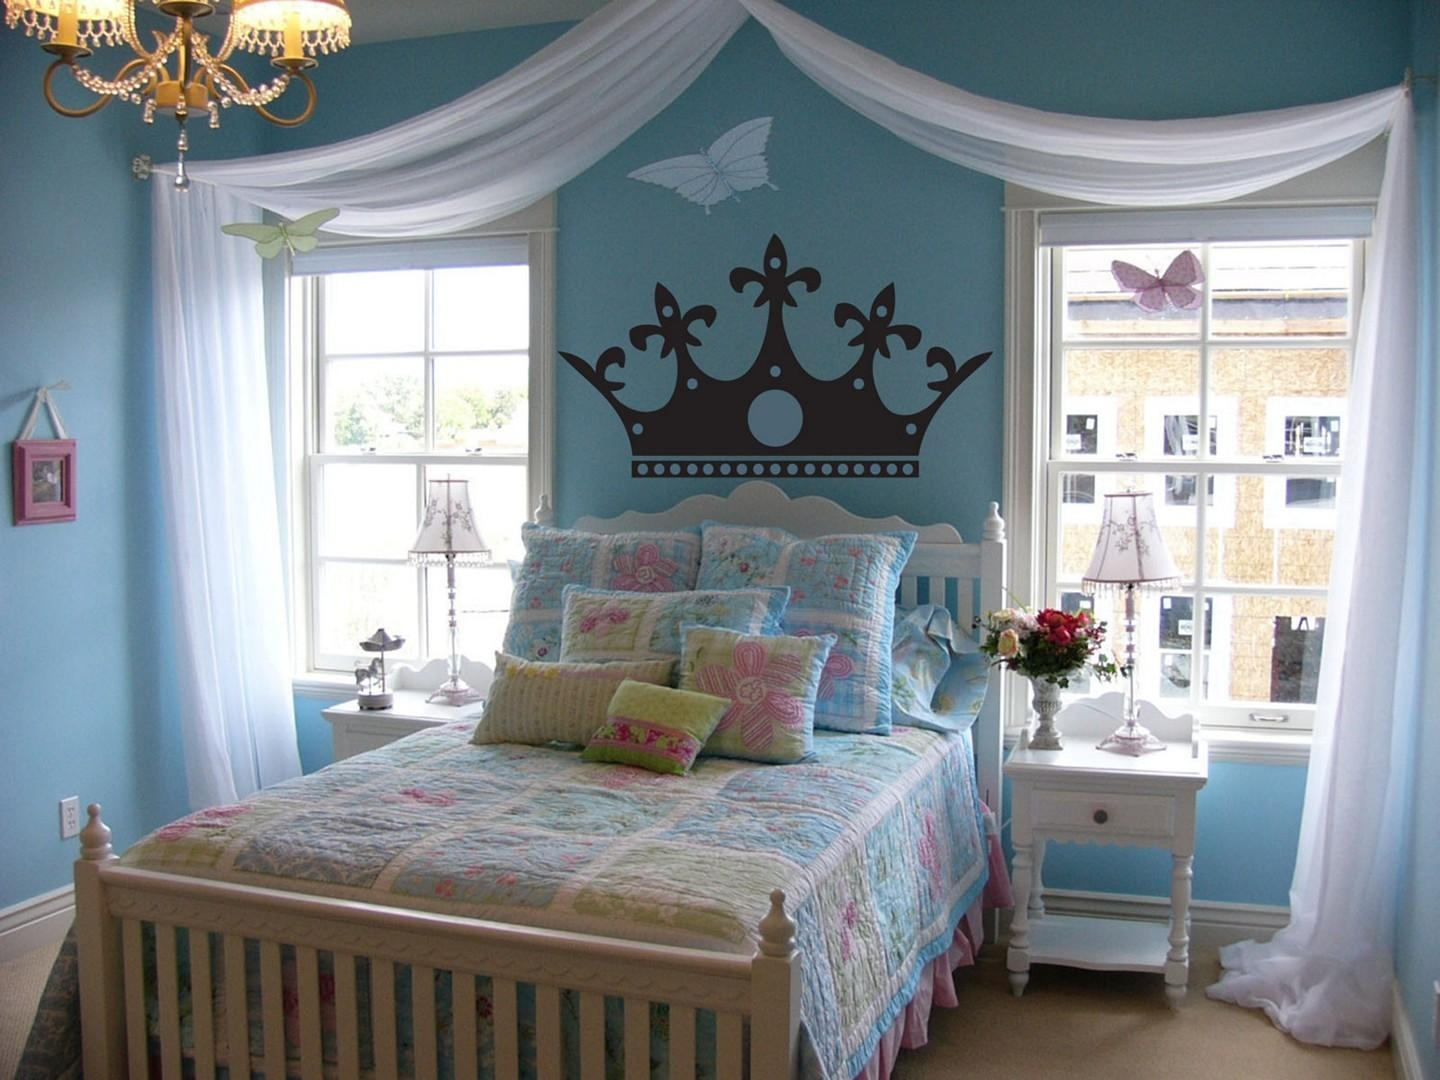 3D Princess Crown Wall Art Decor – Homestylediary Intended For Princess Crown Wall Art (Image 1 of 20)